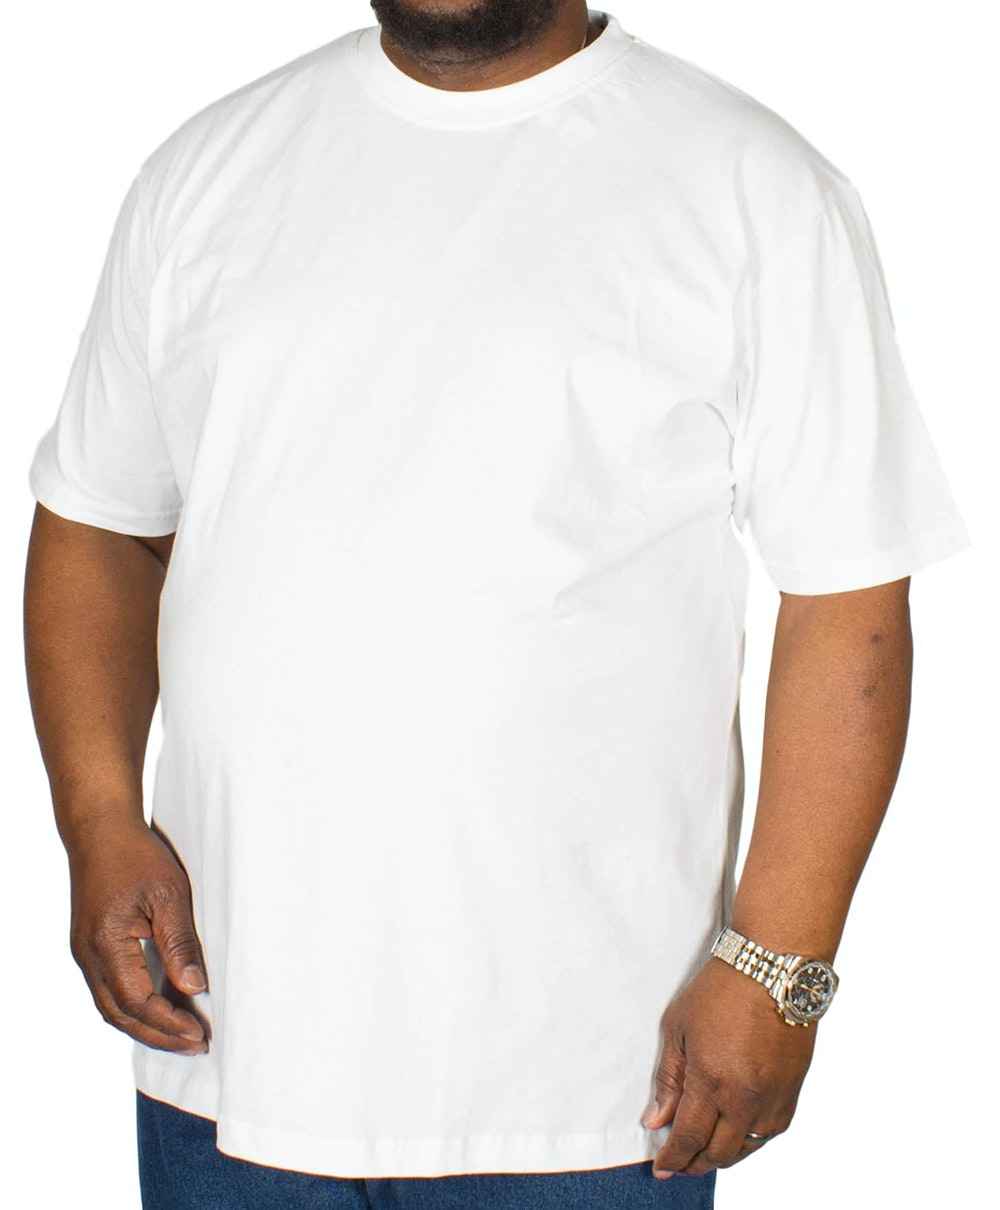 Bigdude Plain Crew Neck T-Shirt White Tall